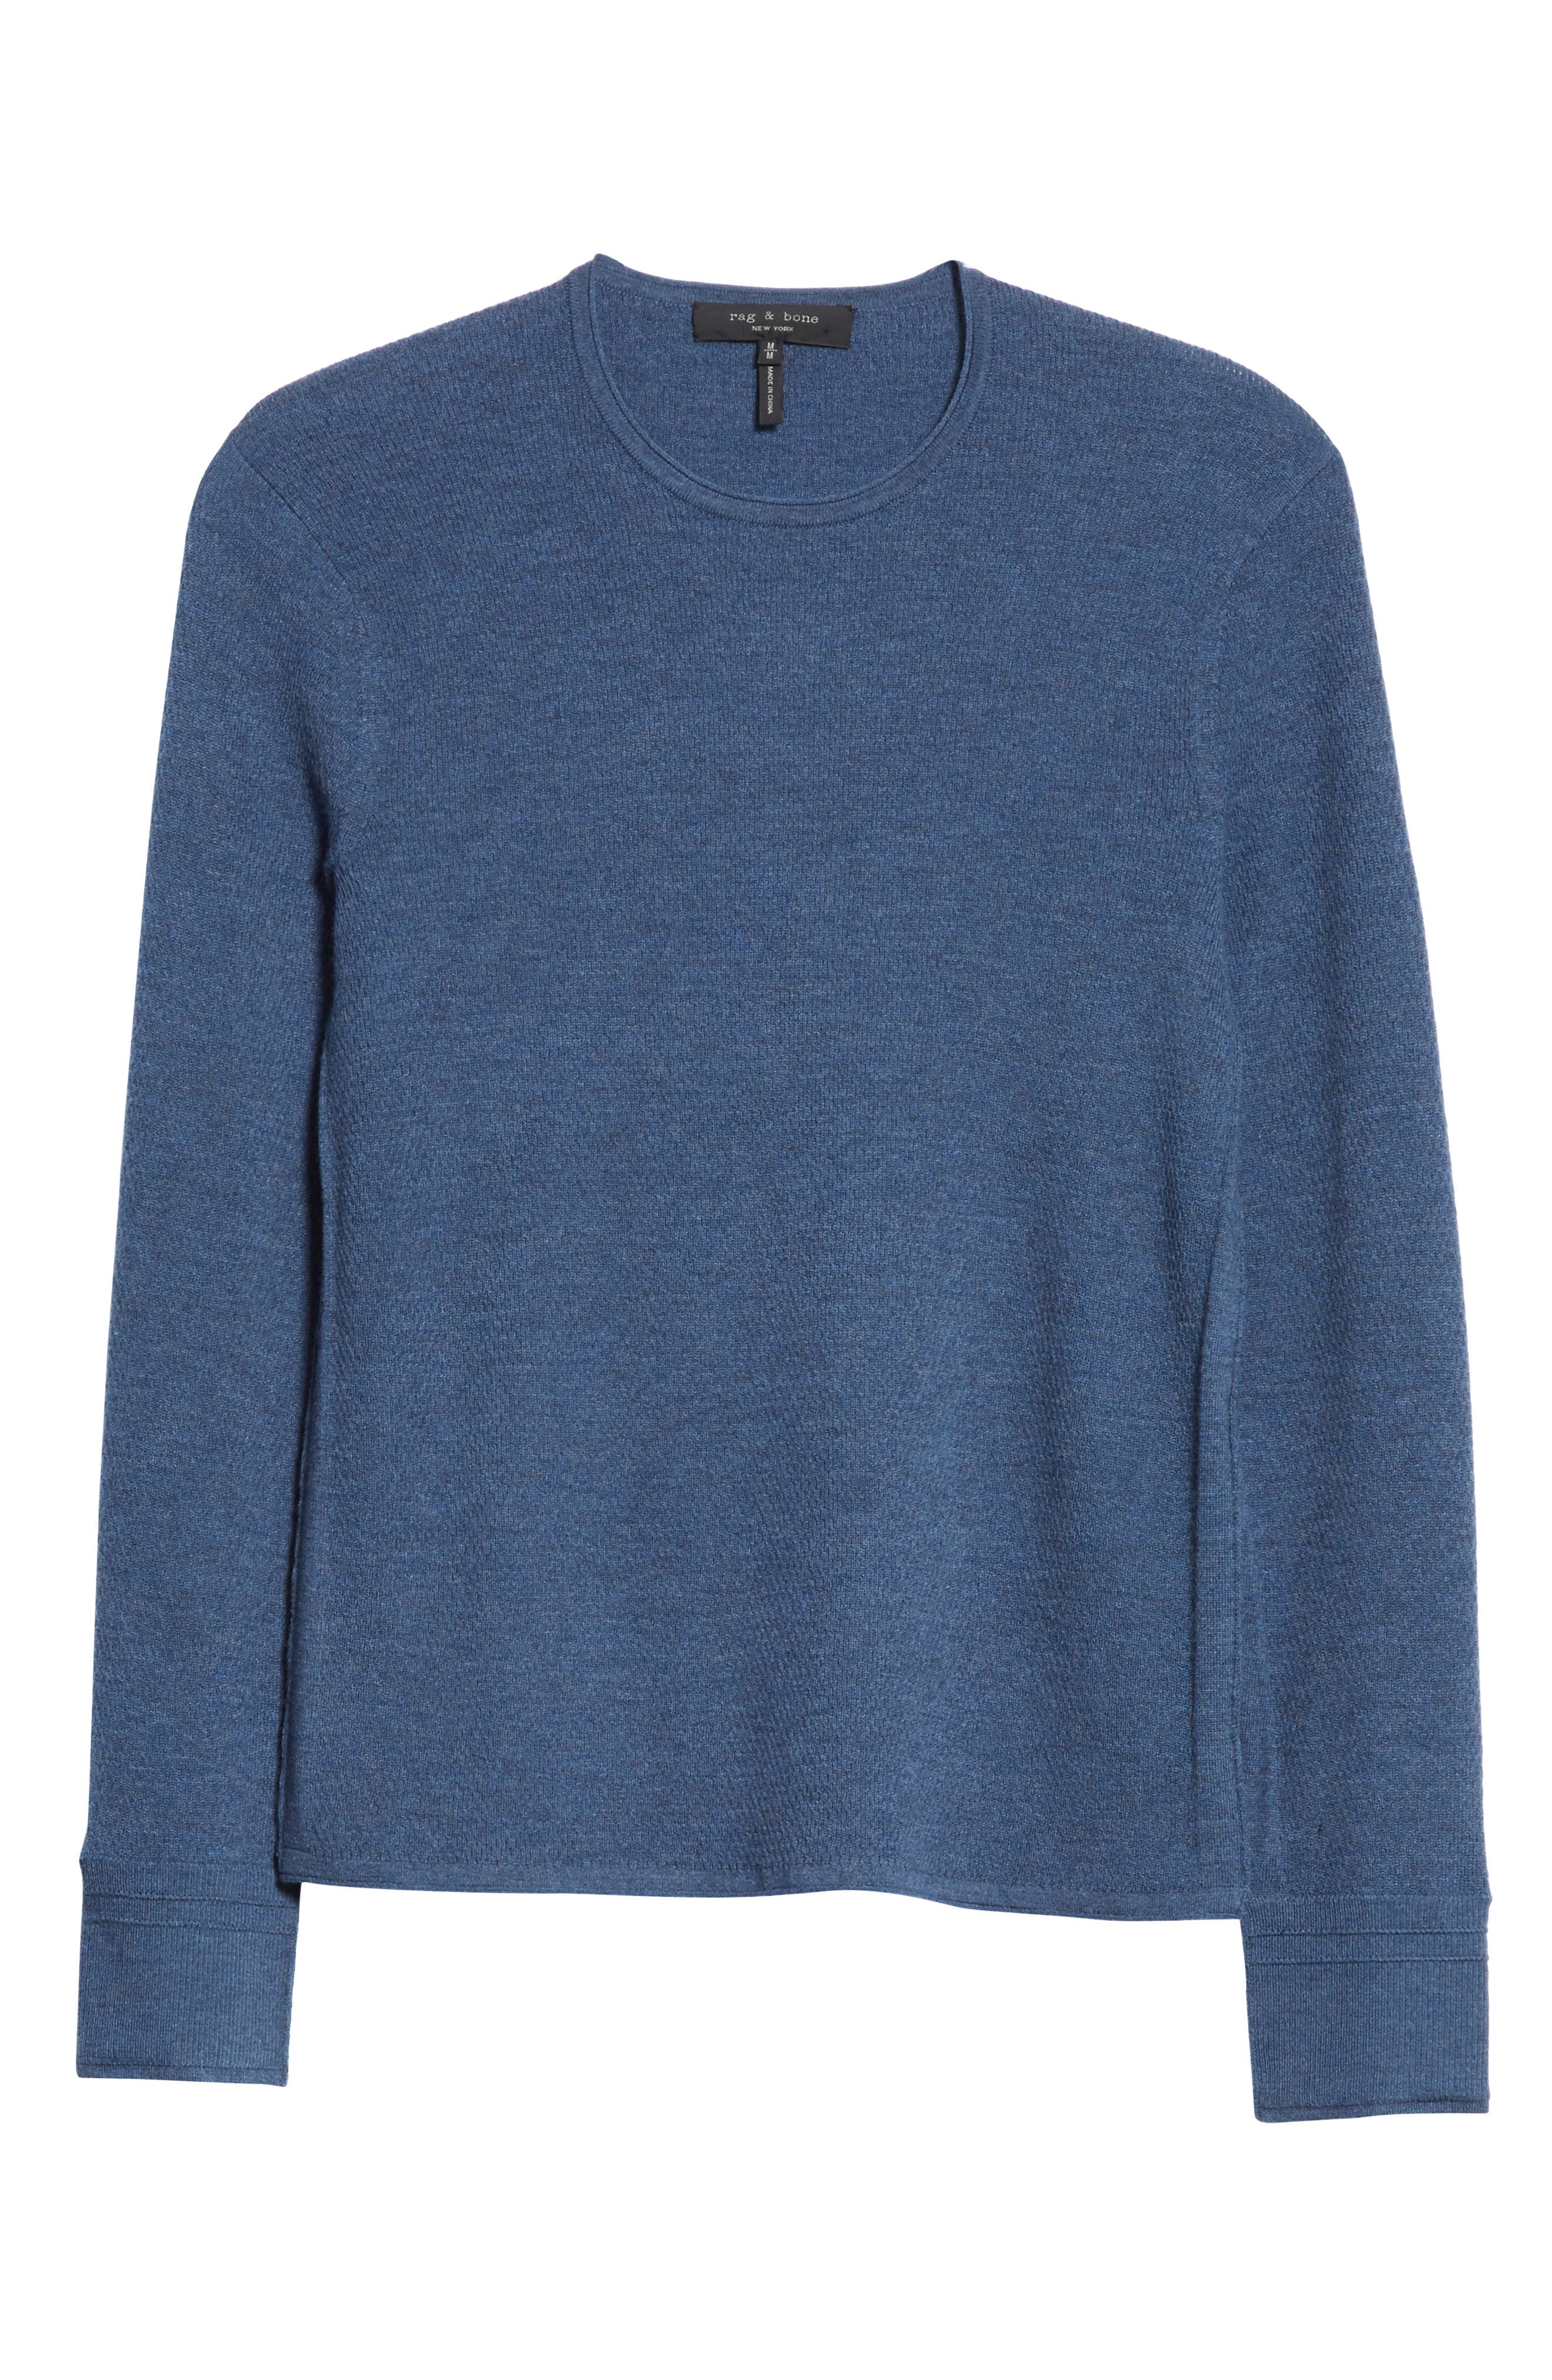 Gregory Merino Wool Blend Crewneck Sweater,                             Alternate thumbnail 6, color,                             Heather Blue